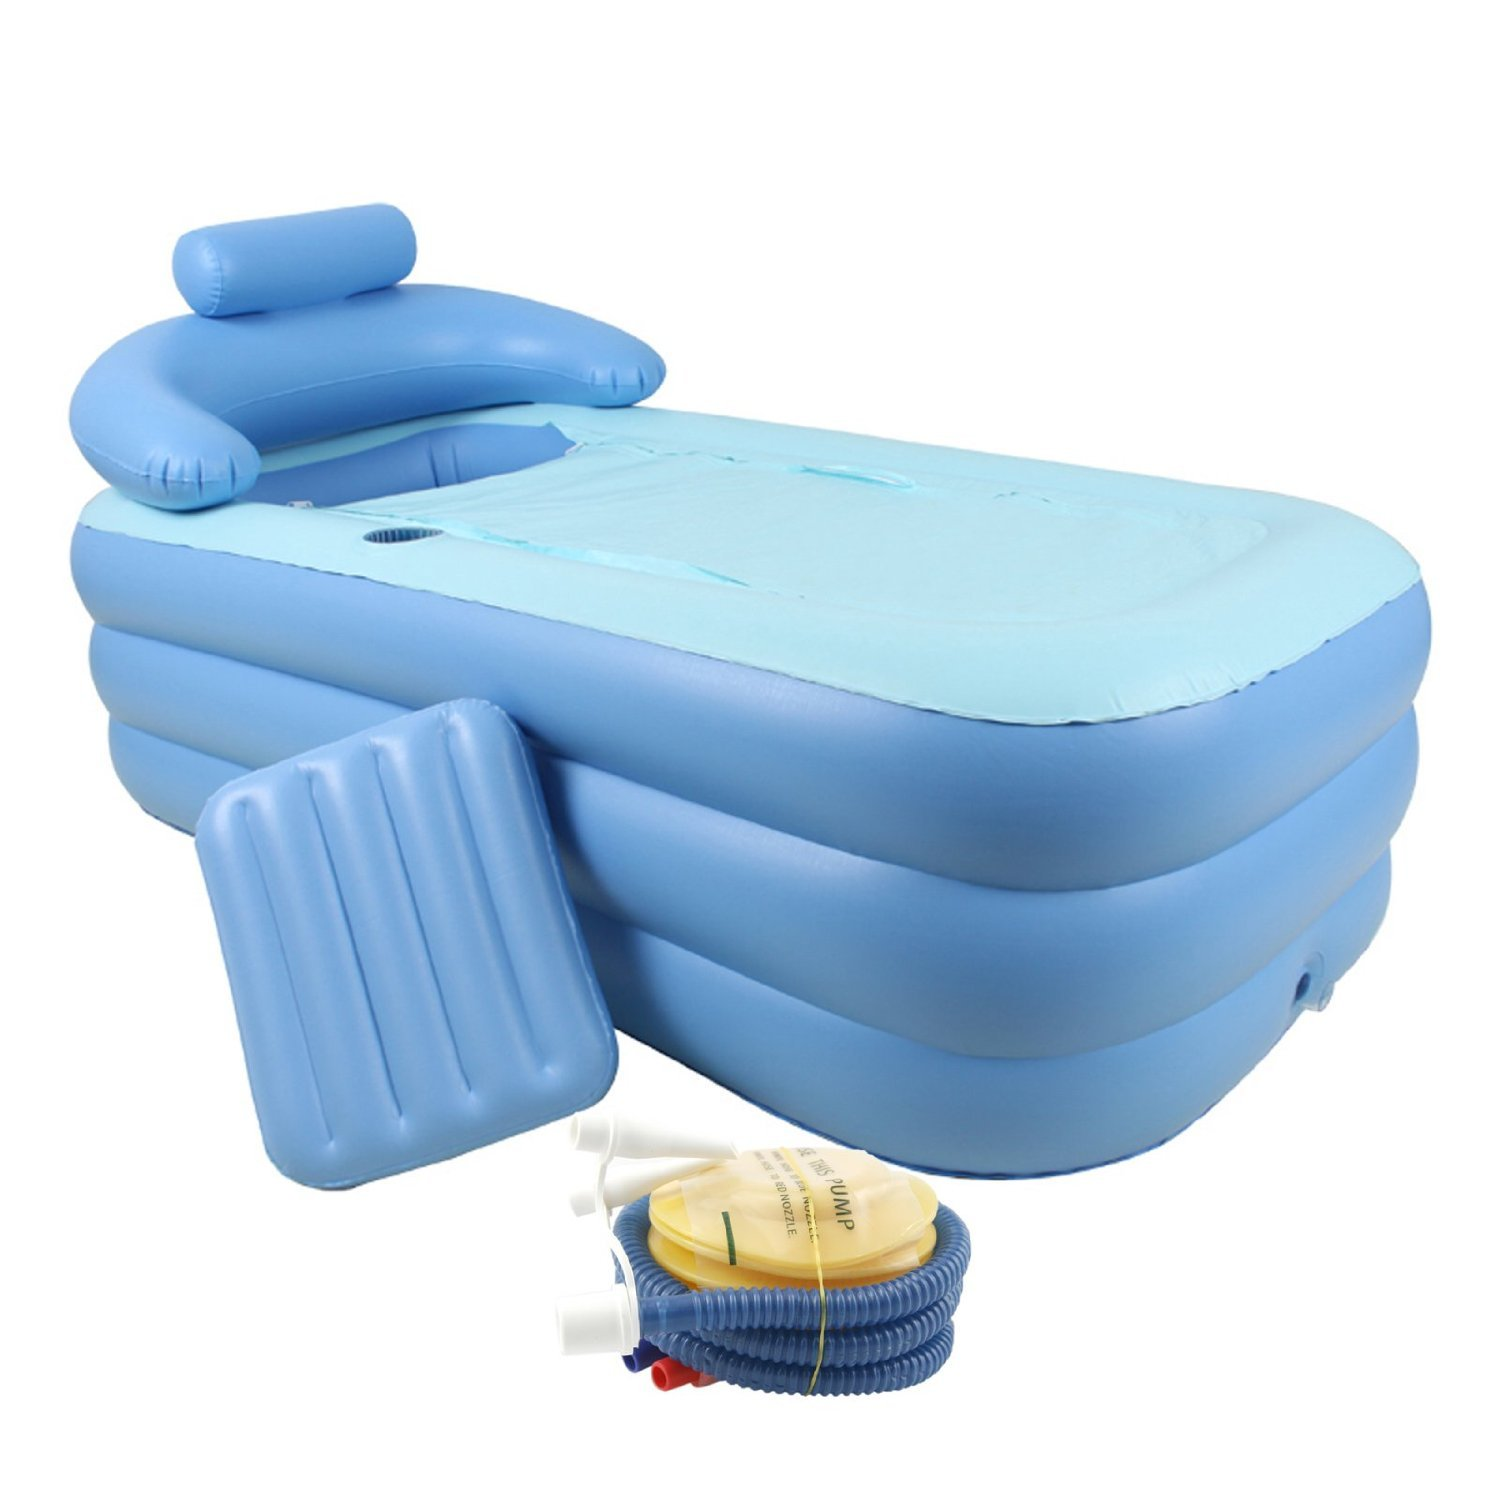 Adult PVC Portable Folding Inflatable Bath Tub W/ Air Pump For Bathroom SPA